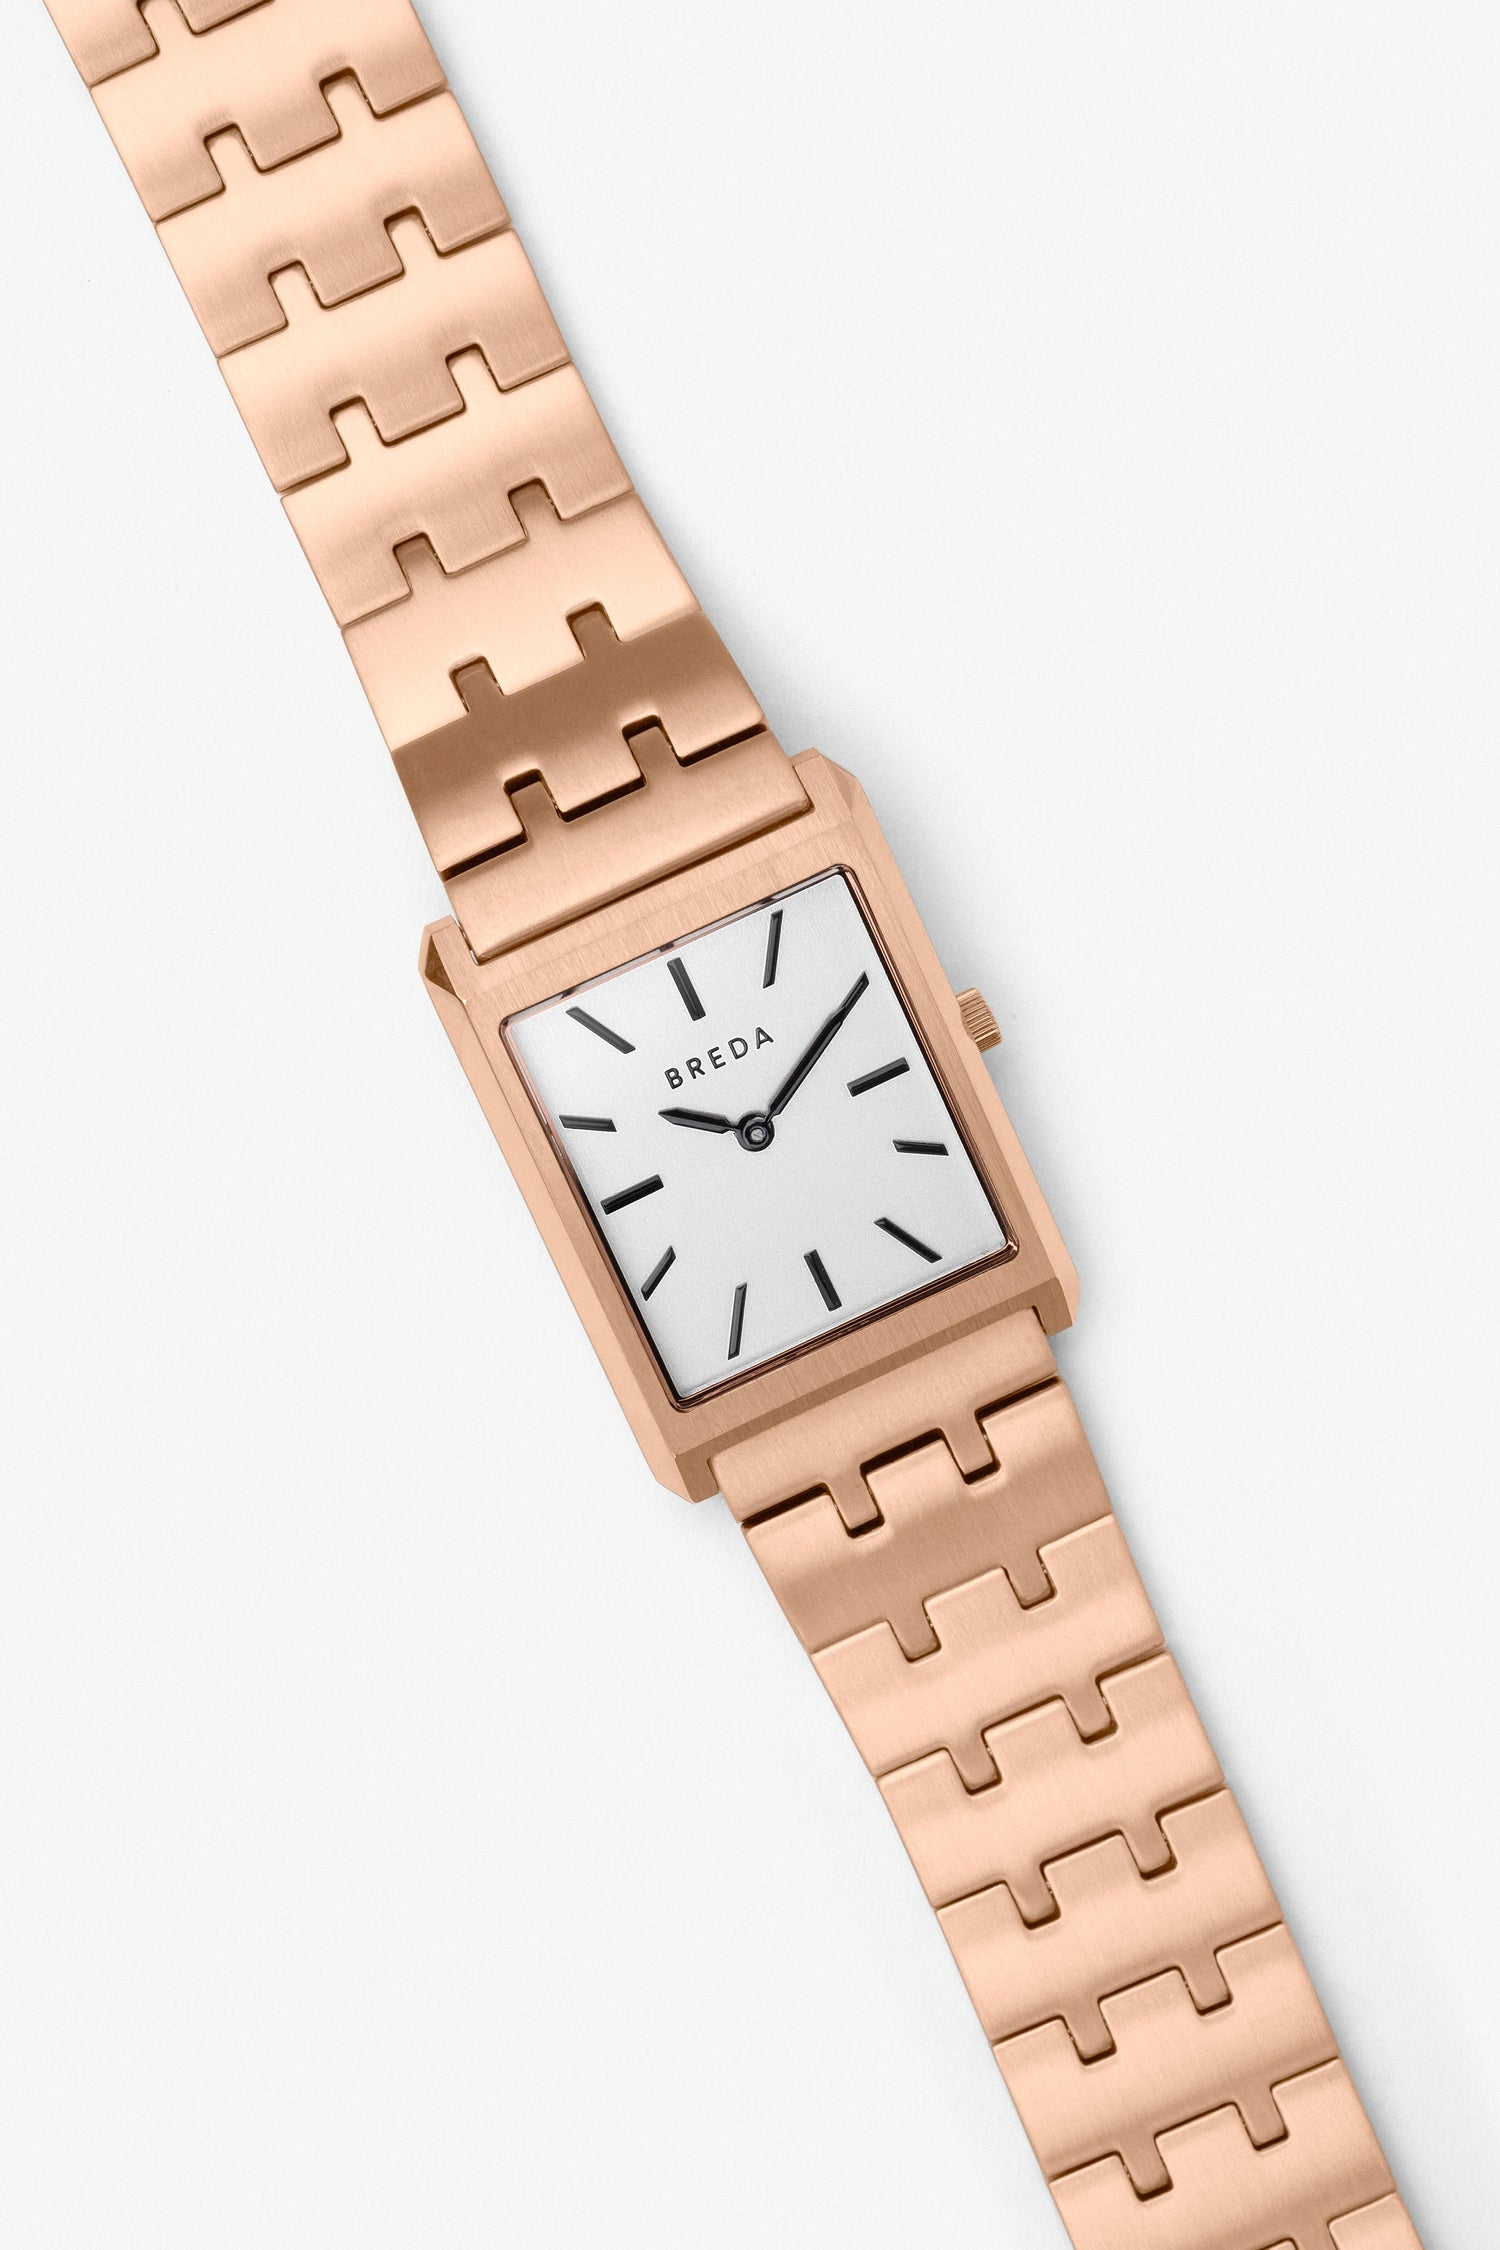 breda-virgil-1740d-rose-gold-metal-bracelet-watch-long